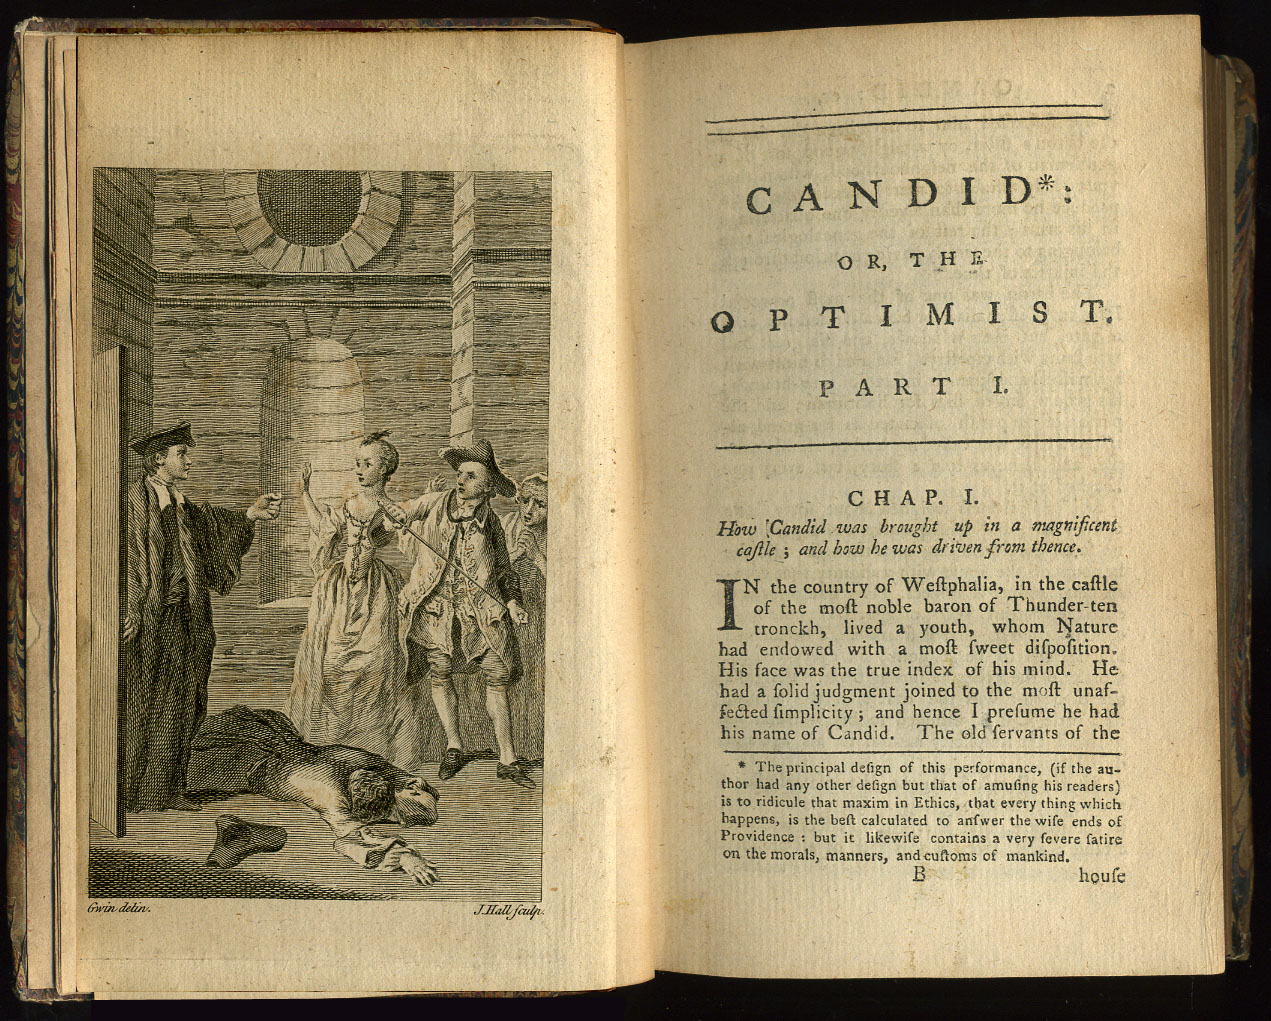 Candide and the Enlightenment